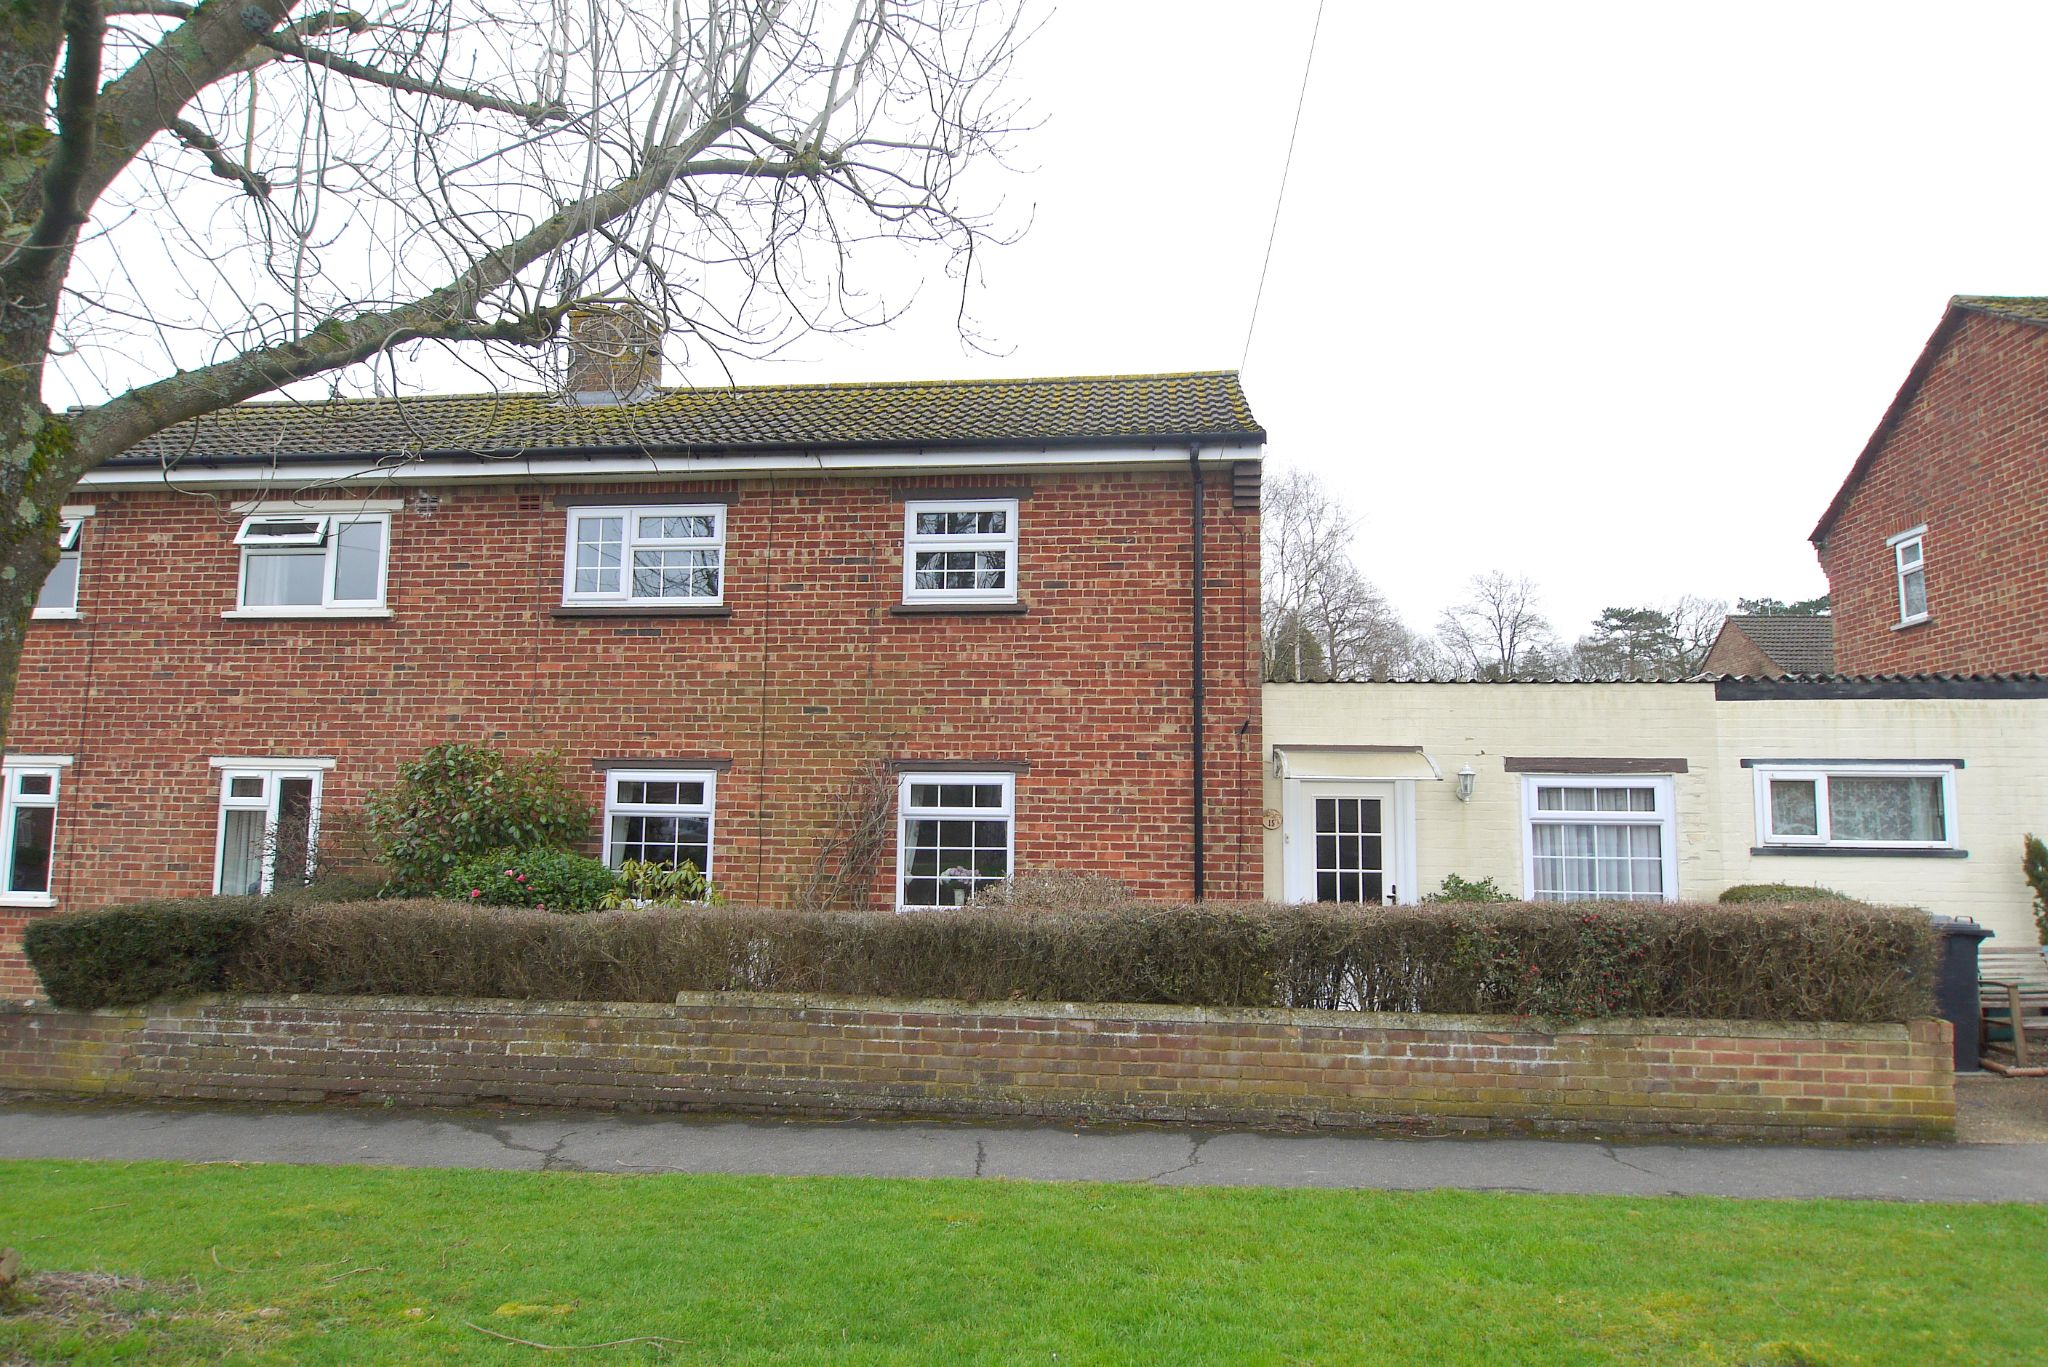 3 bedroom semi-detached house For Sale in Tonbridge - Photograph 1